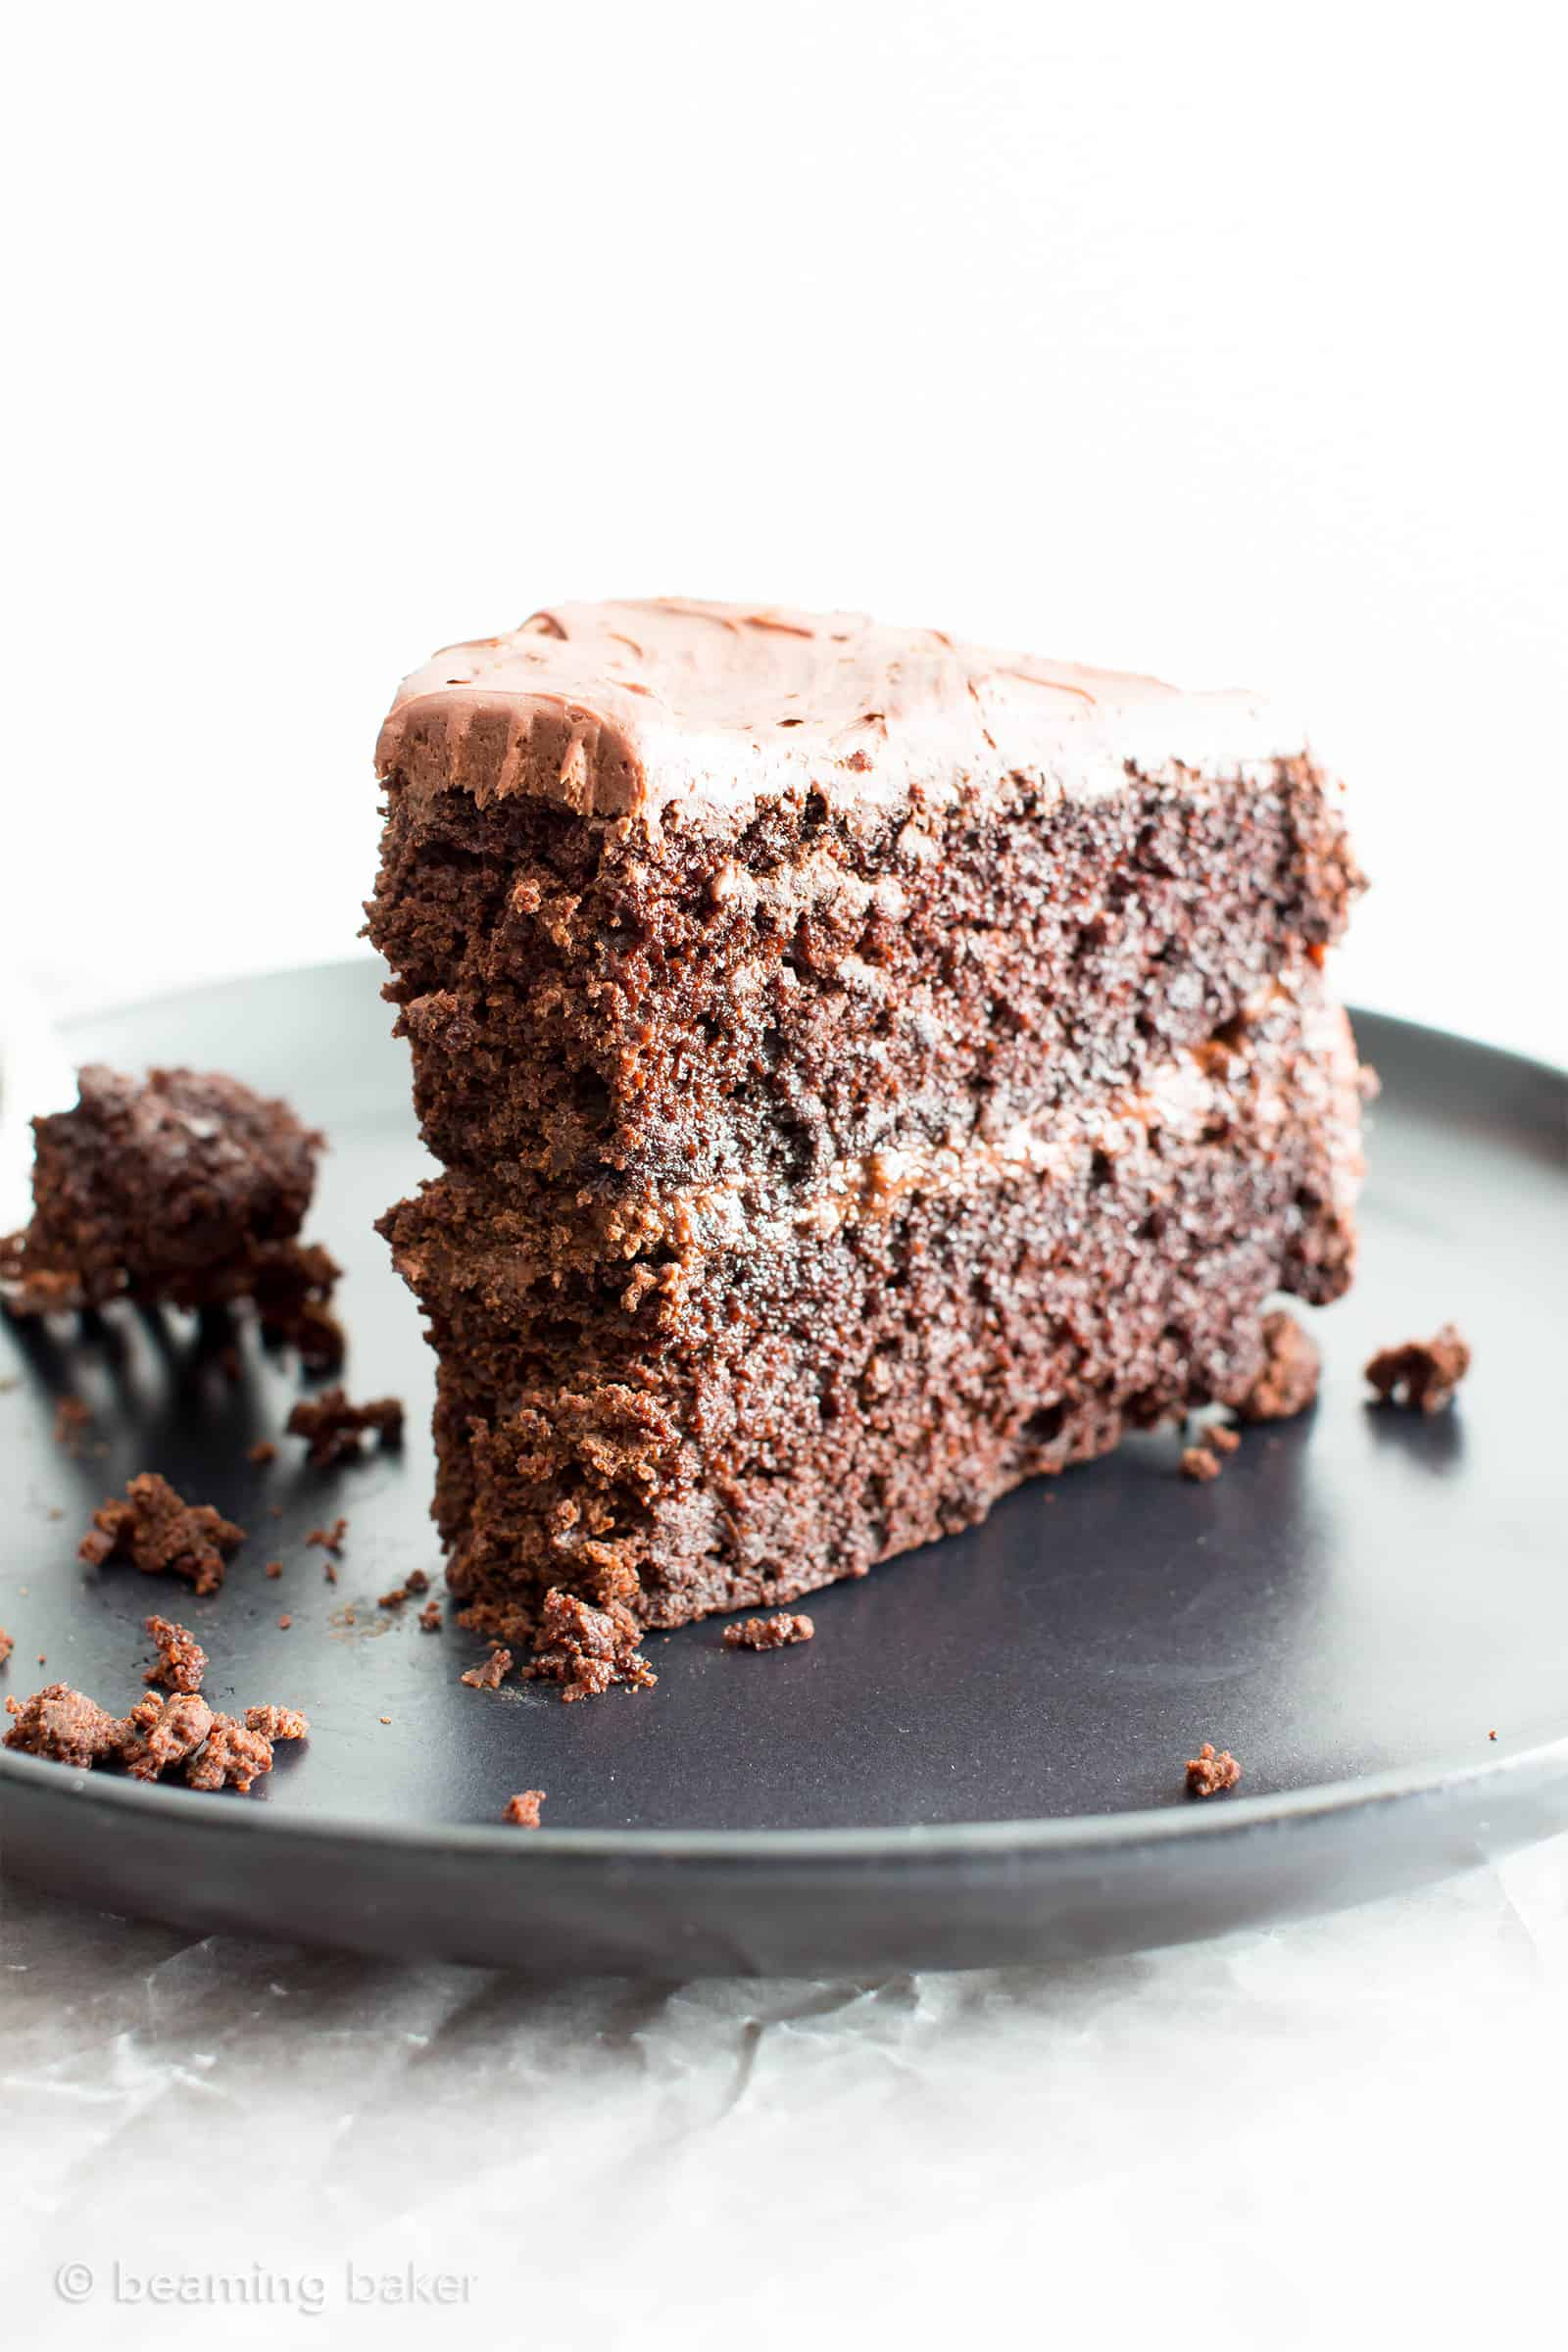 Vegan Chocolate Cake Recipe (Gluten Free, Dairy-Free, V, Refined Sugar-Free)